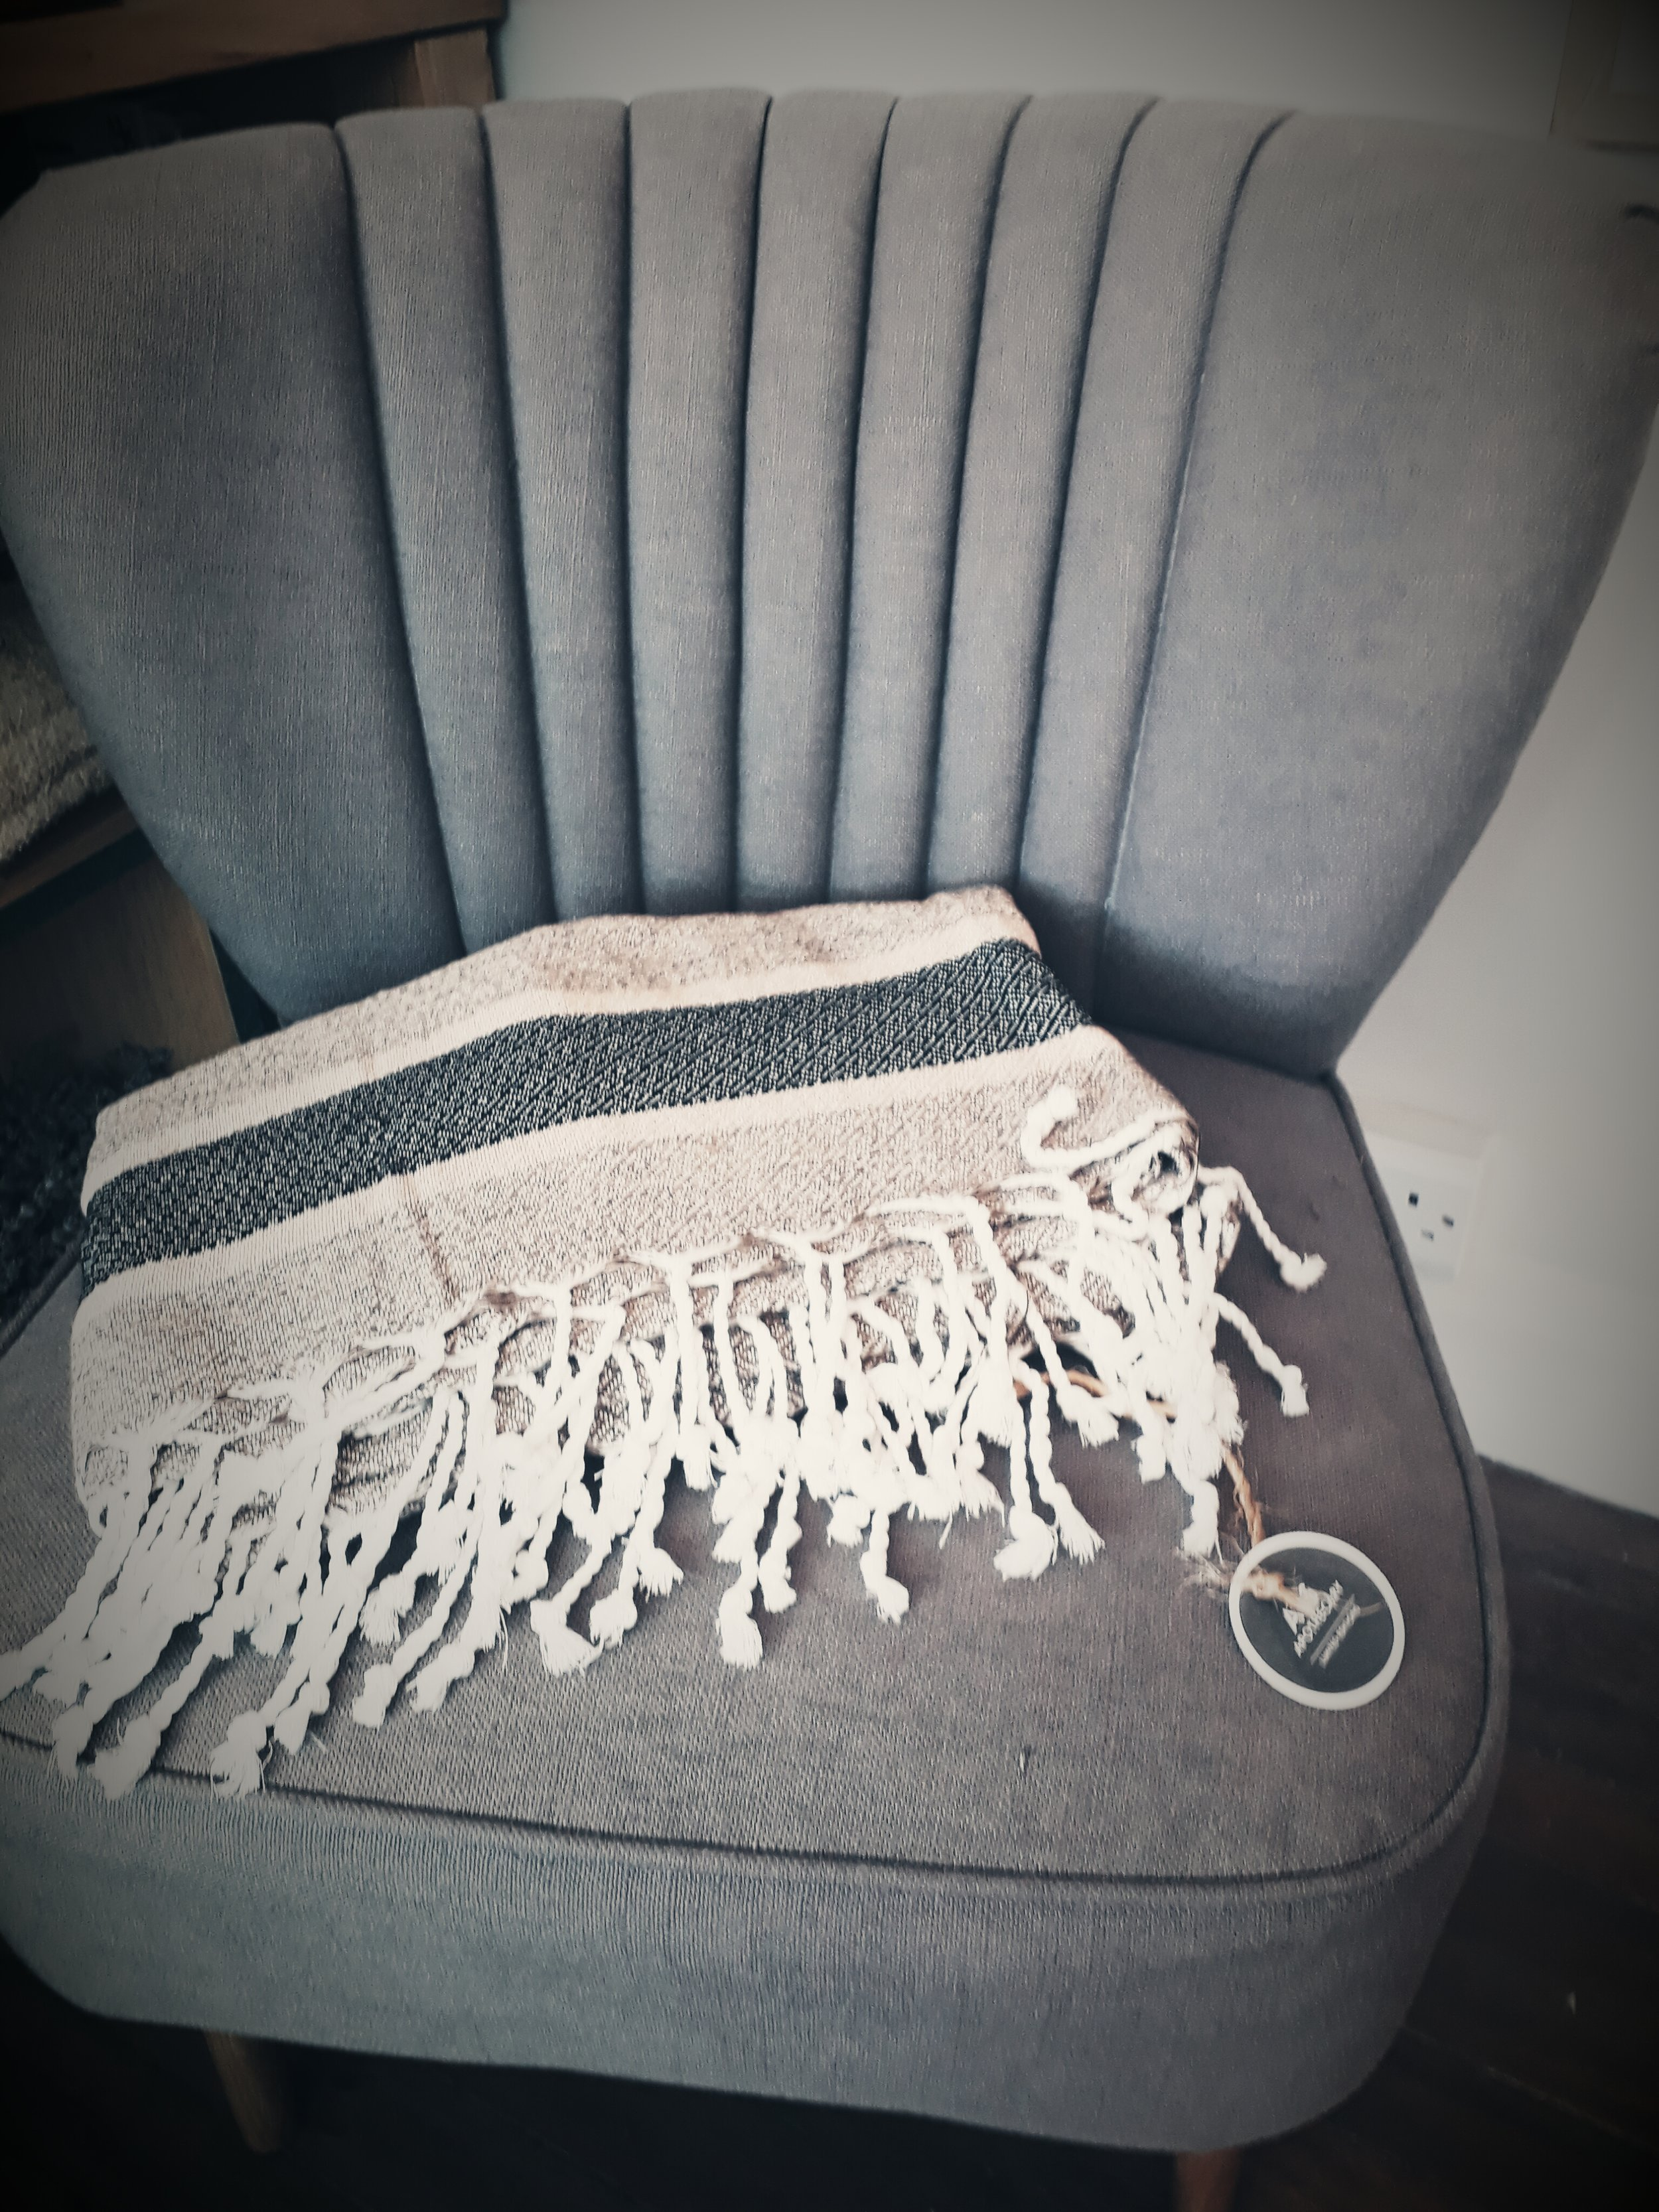 real wool, traditionally woven cypriot blanket.jpg